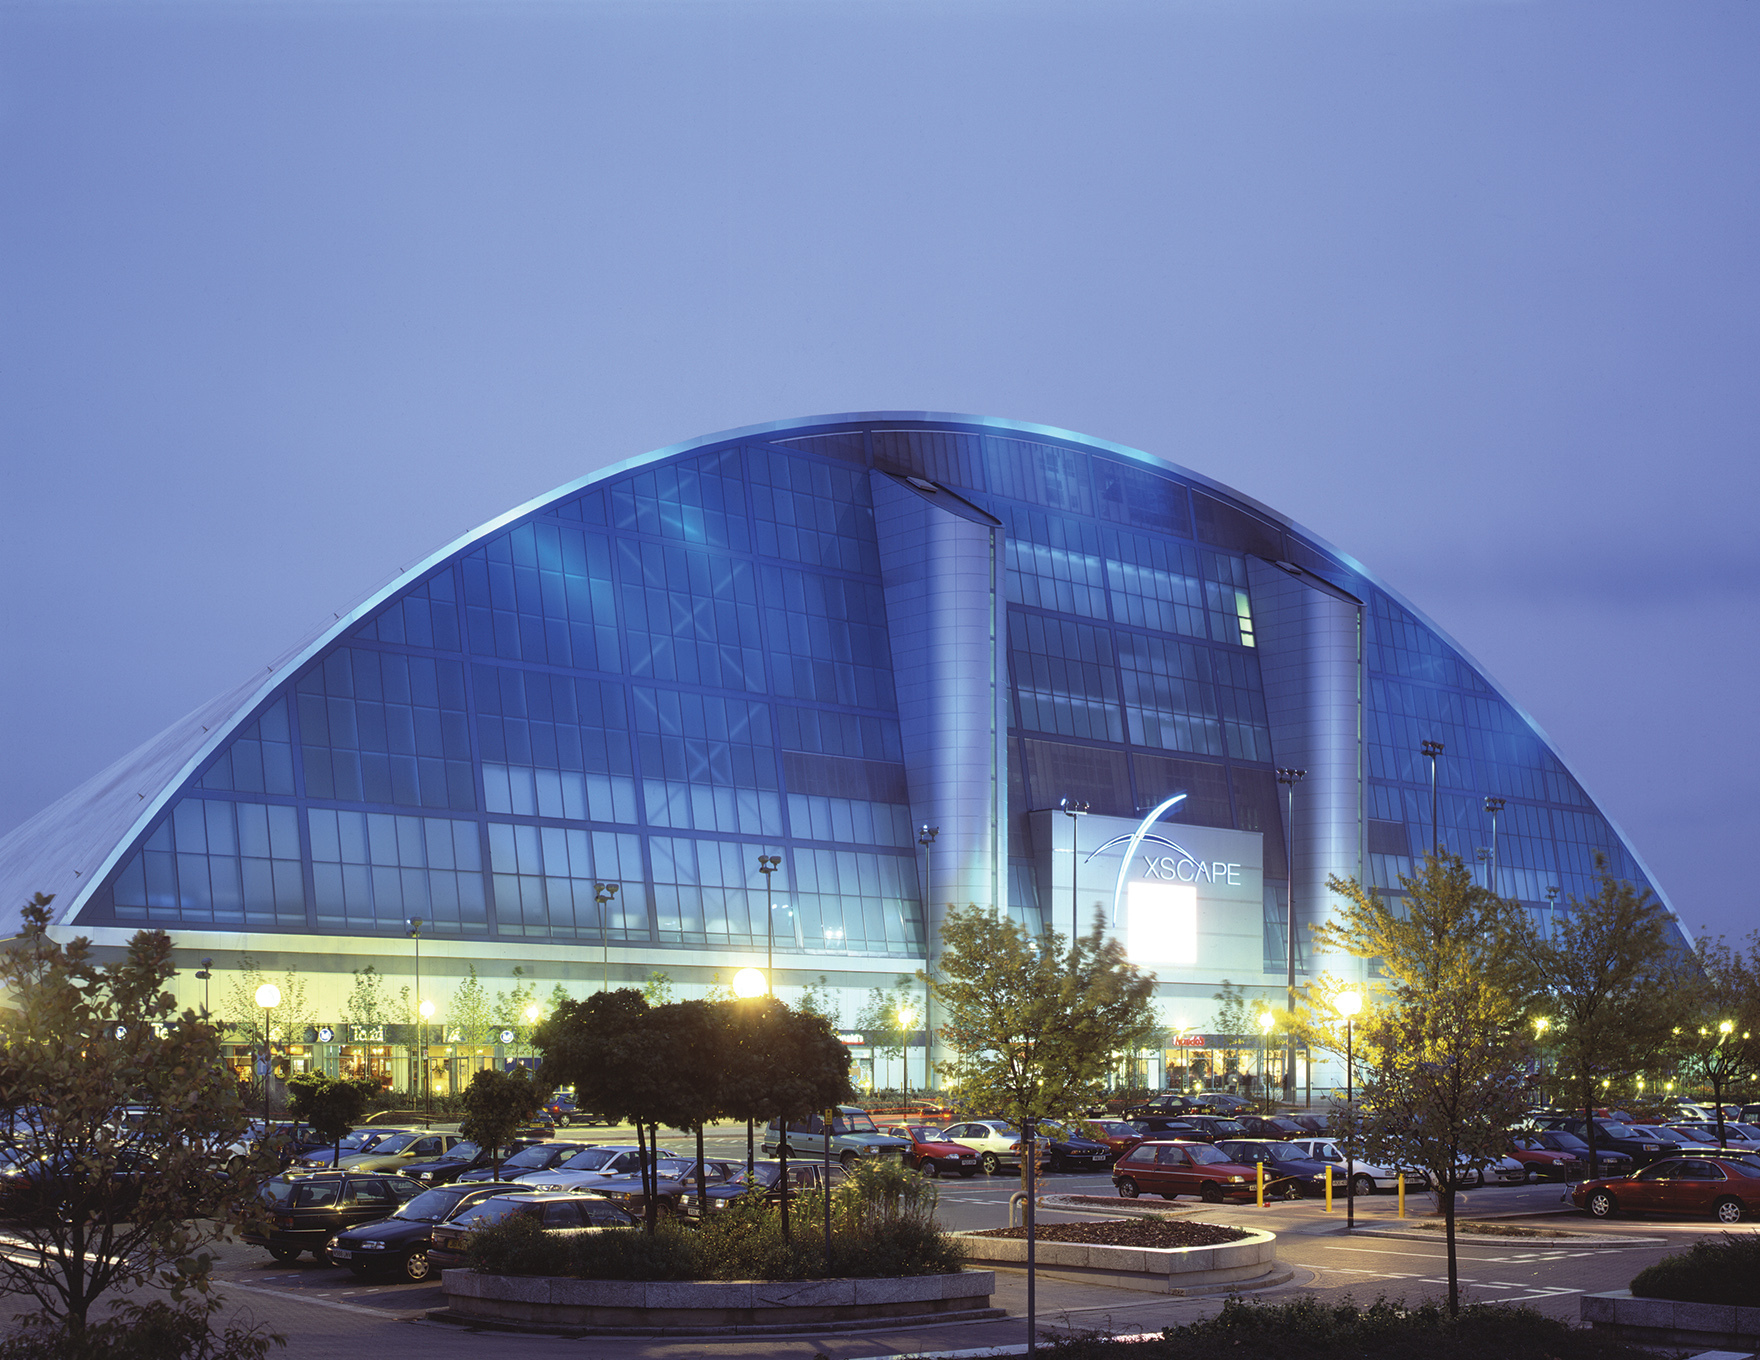 Indoor Snow Expertise Xscape Milton Keynes Dominating Facade L